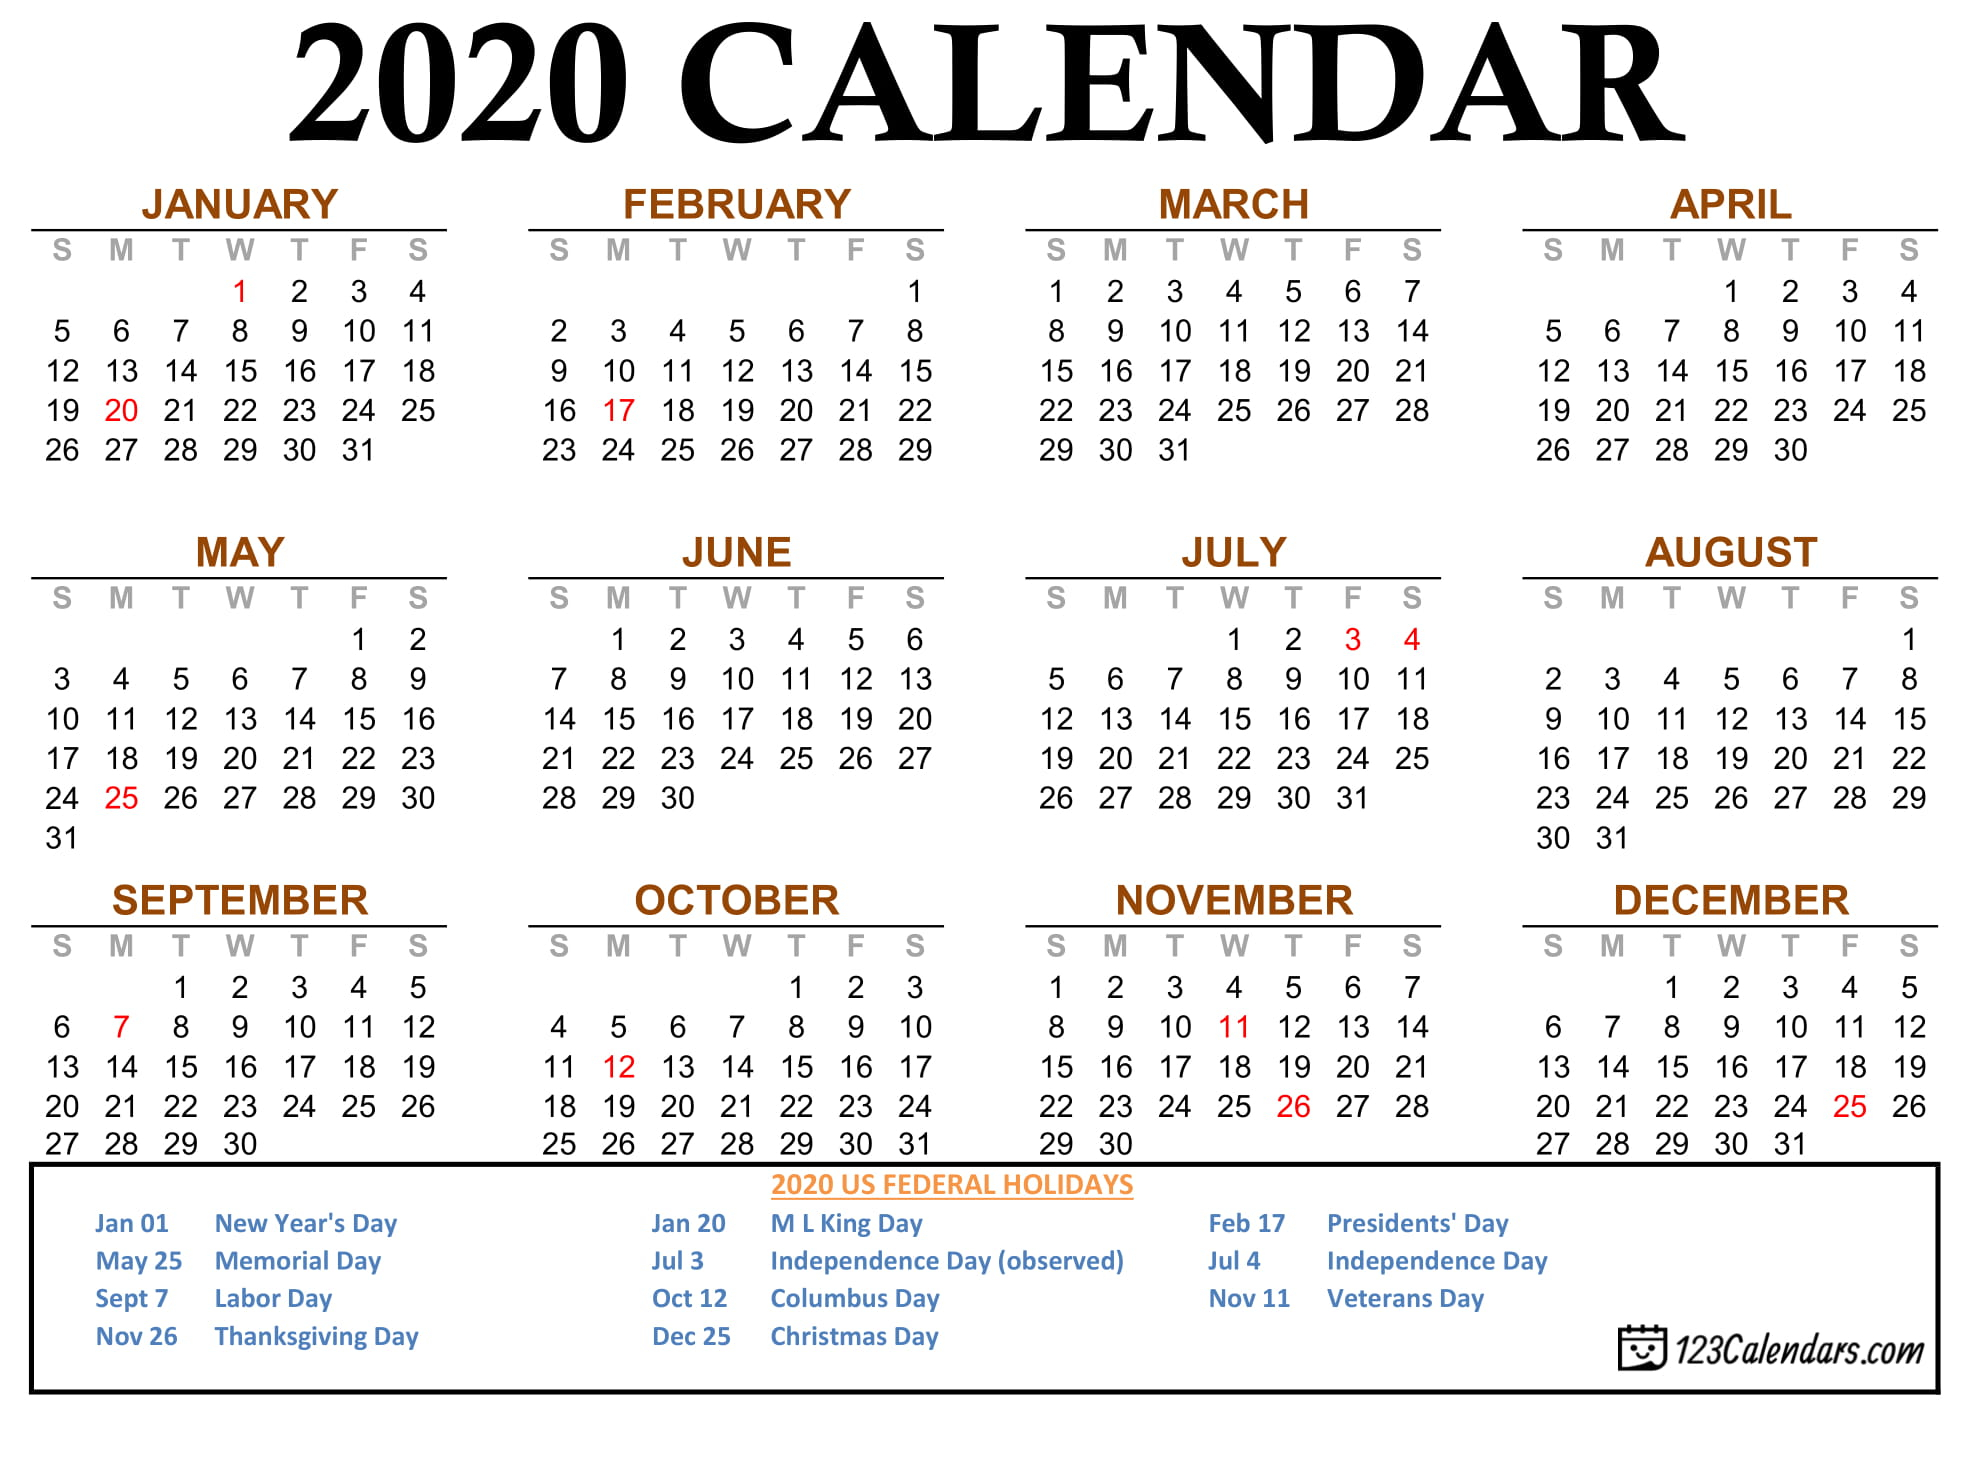 Free Printable 2020 Calendar | 123Calendars Throughout Printable Calender With Days O The Year